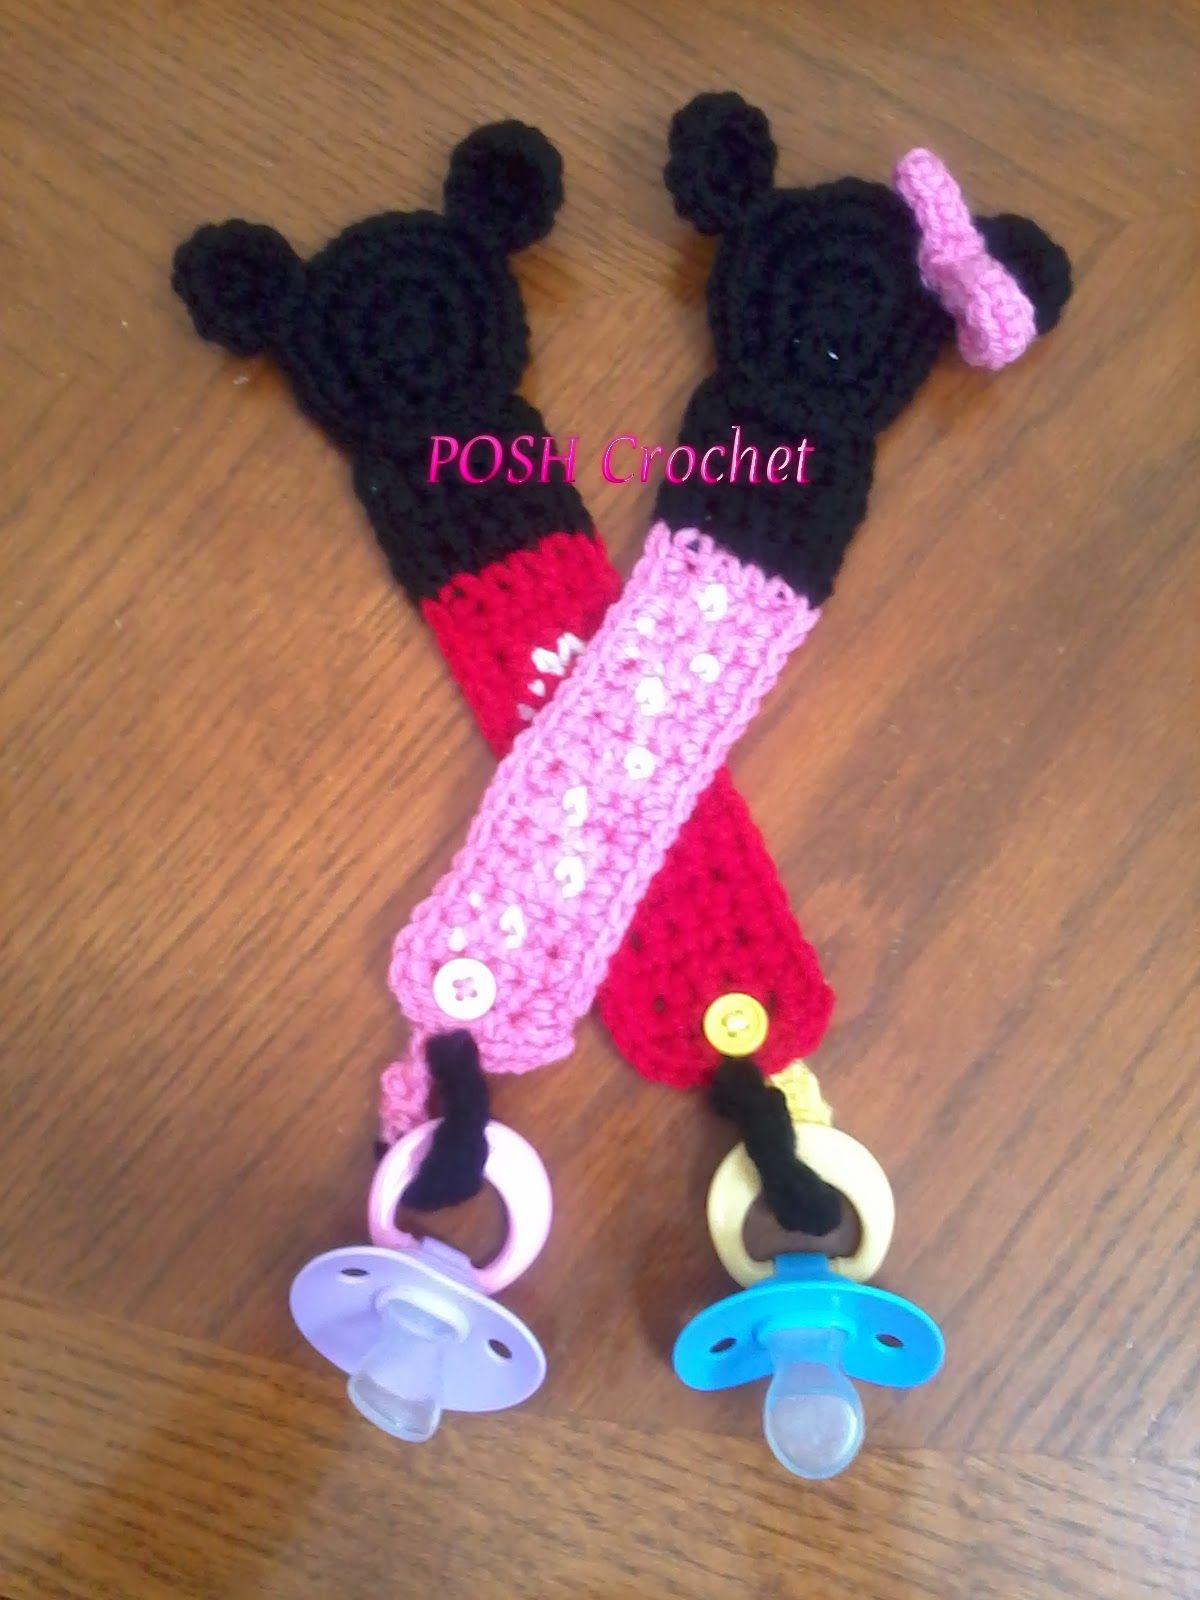 POSH Crochet: Mickey & Minnie Mouse Pacifier Holder | Crochet ...